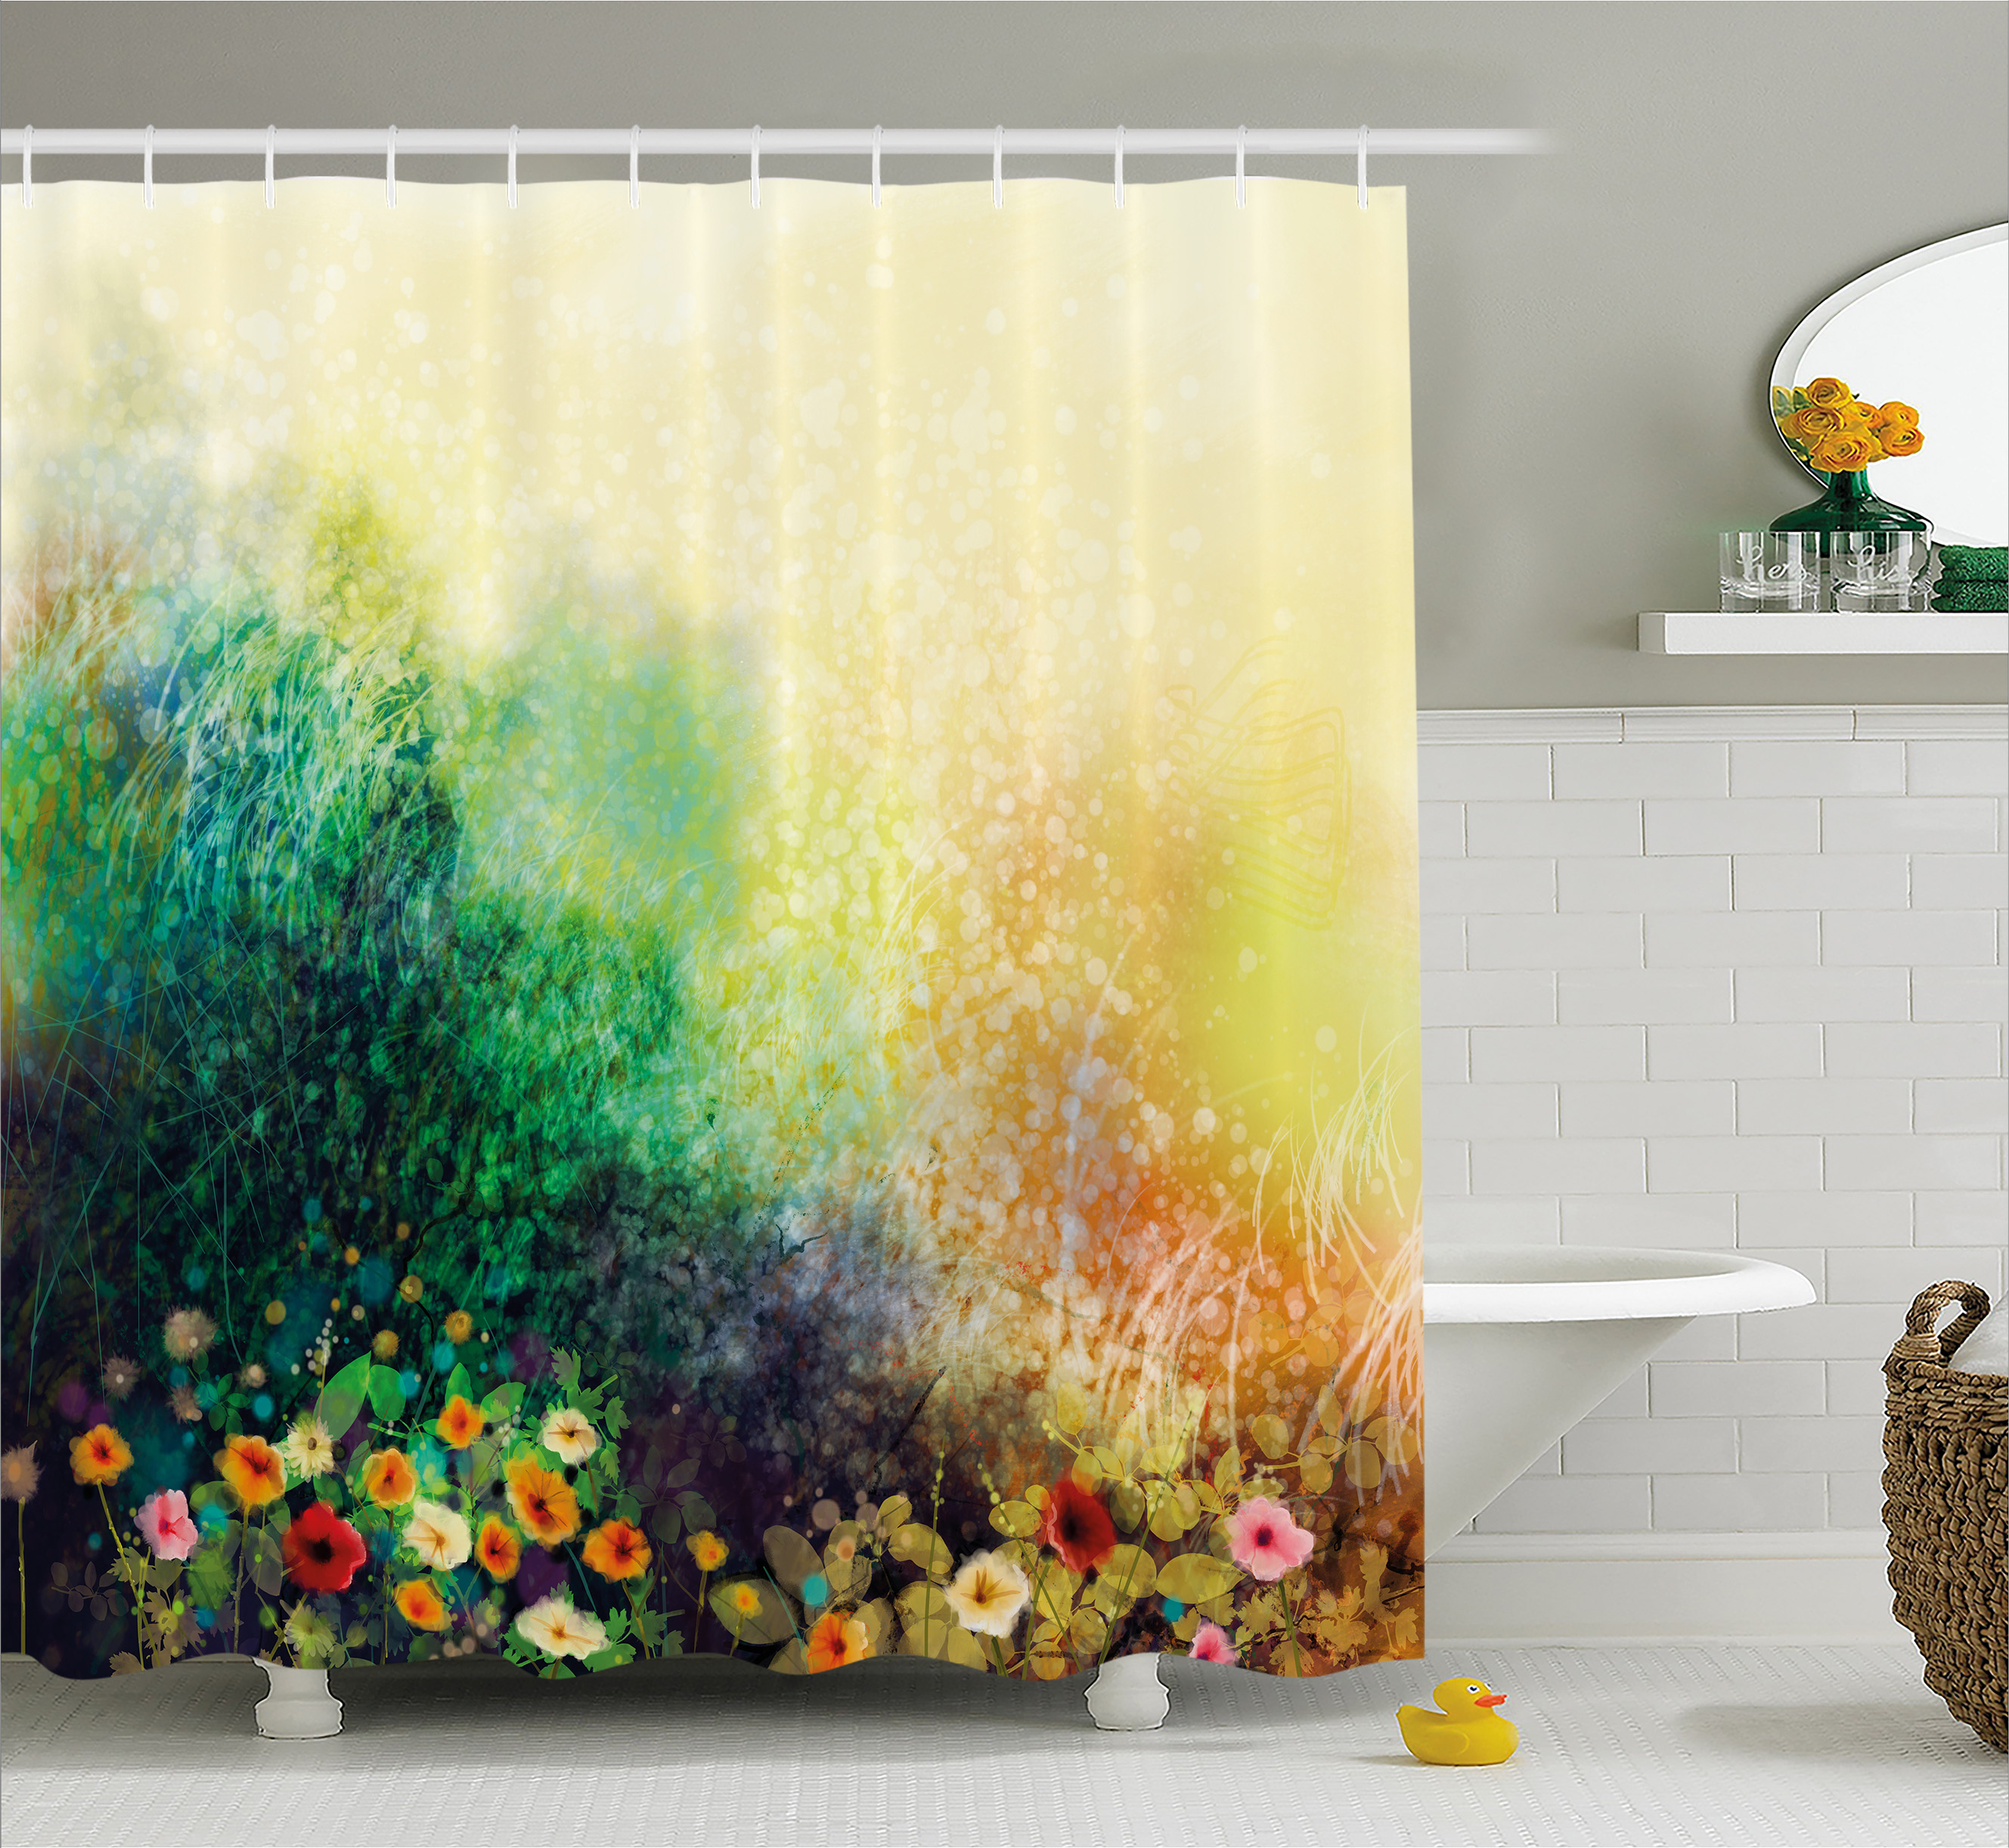 Watercolor Flower Home Decor Shower Curtain, Flower Bed on Valley in Fall with Shady Faded Murky Print, Fabric Bathroom Set with Hooks, 69W X 84L Inches Extra Long, Green Mustard, by Ambesonne